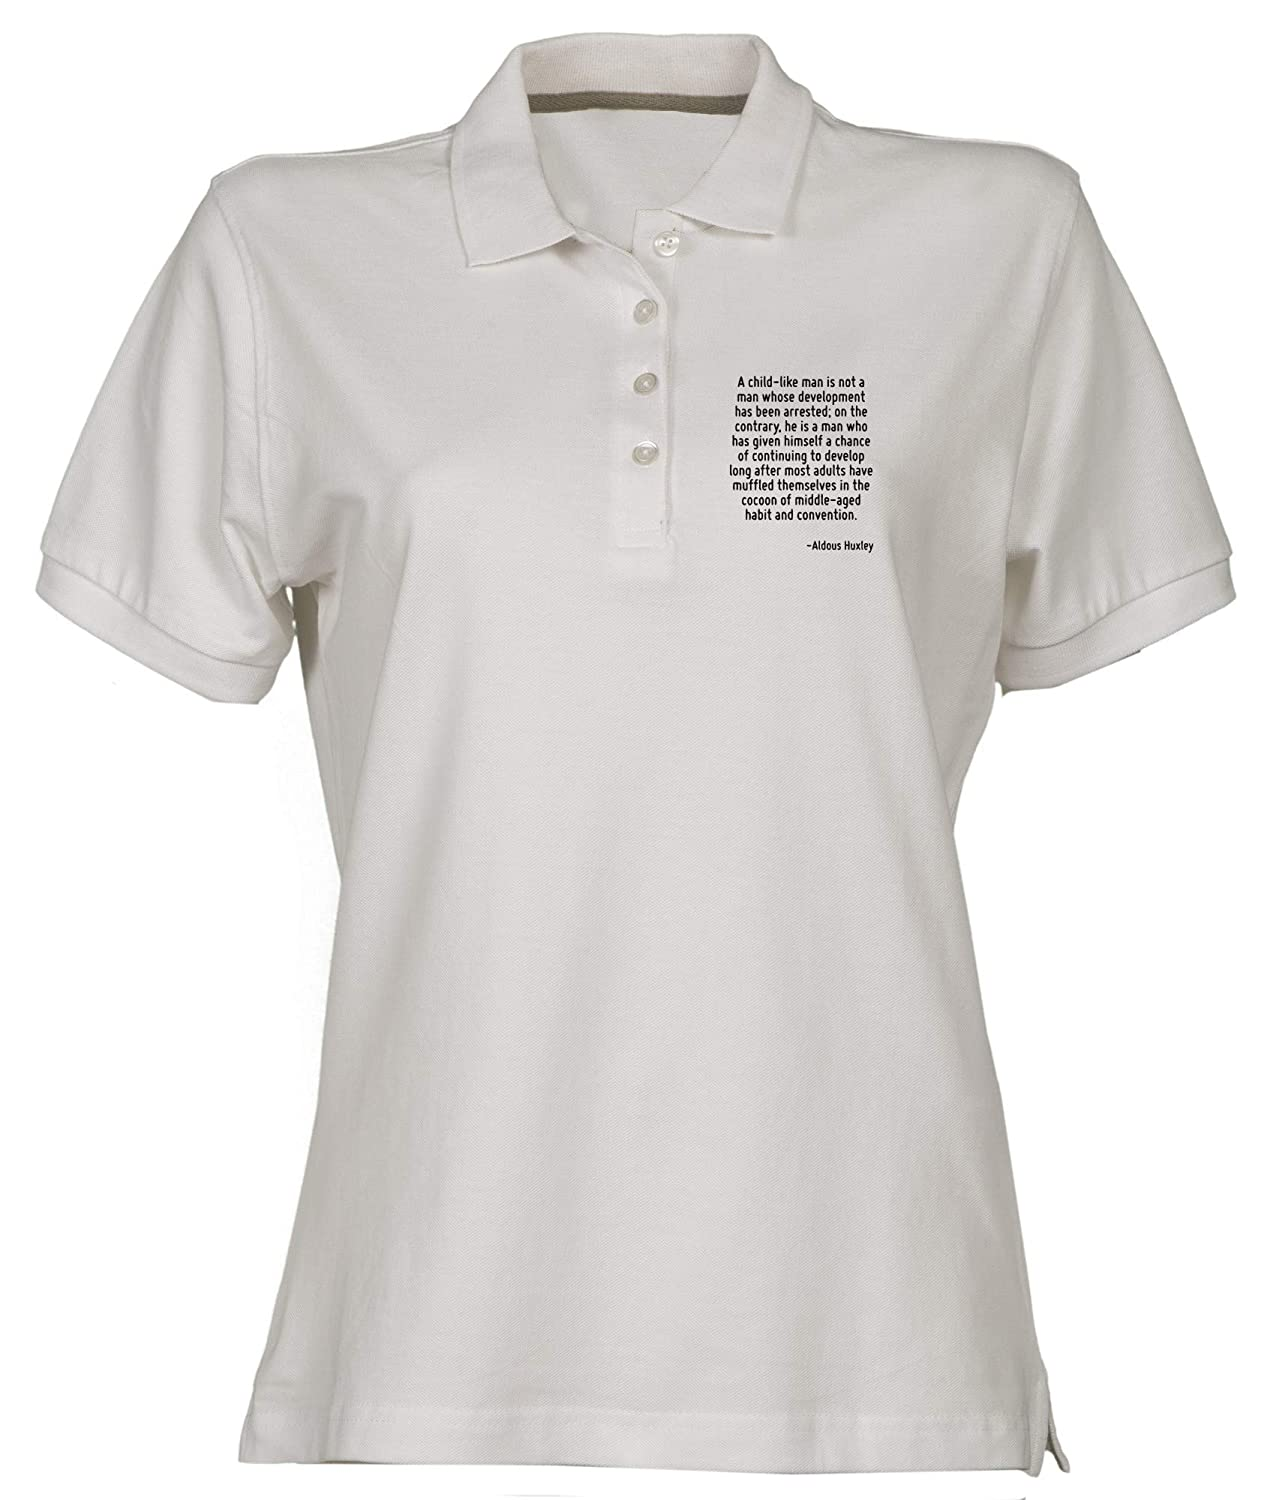 Polo para Mujer Blanco CIT0003 A Child Like Man IS Not A Man Whose ...